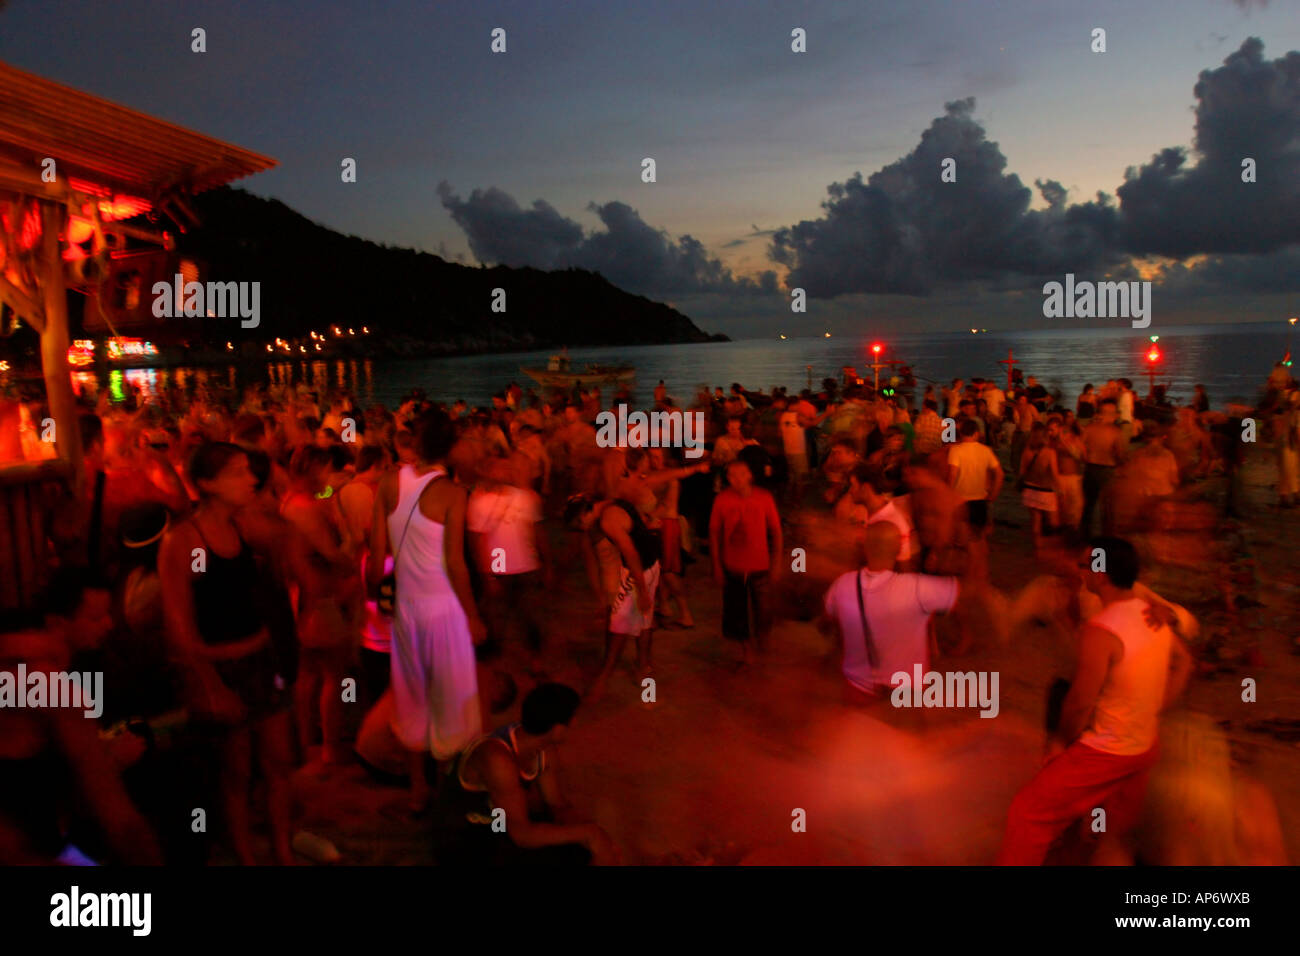 sun rise over the Full moon party at Koh Phangan Thailand - Stock Image